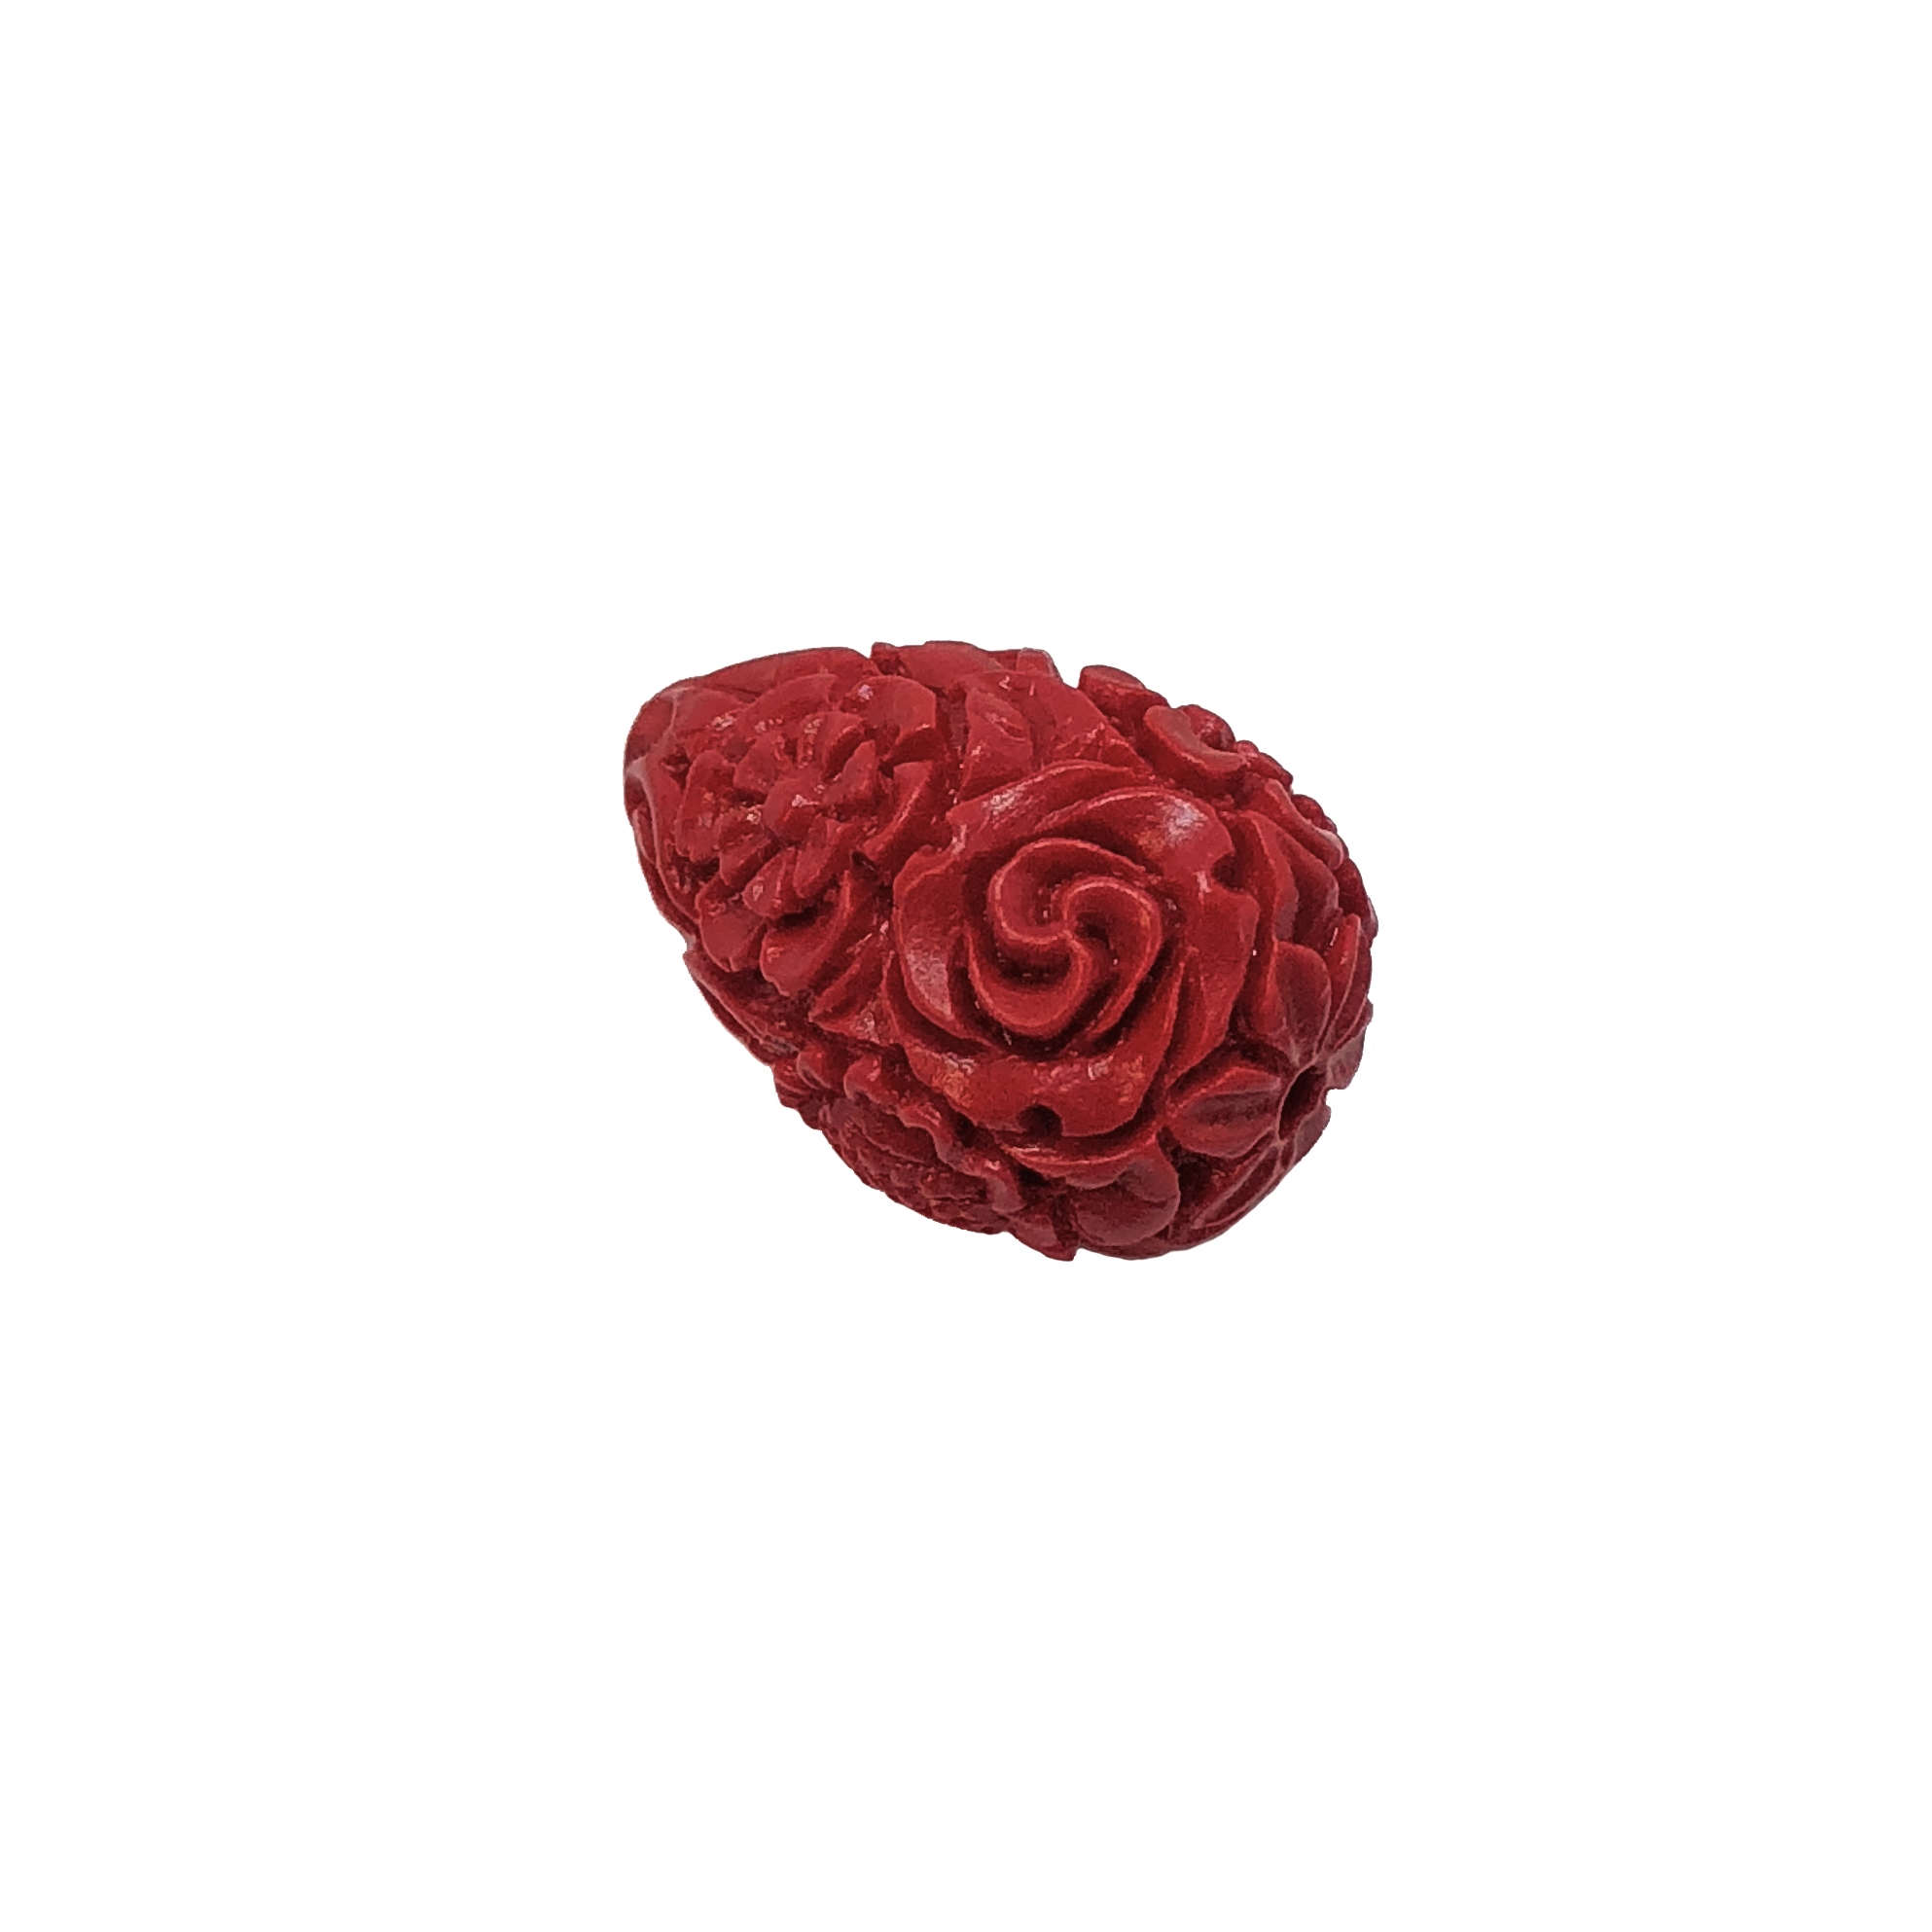 Carved floral Cinnabar Beads, Resin, Red, 09182, beading supplies, vintage jewelry supplies, jewelry making supplies, fashion beads, floral beads, resin beads, carved beads, fire brick red, tear drop beads,